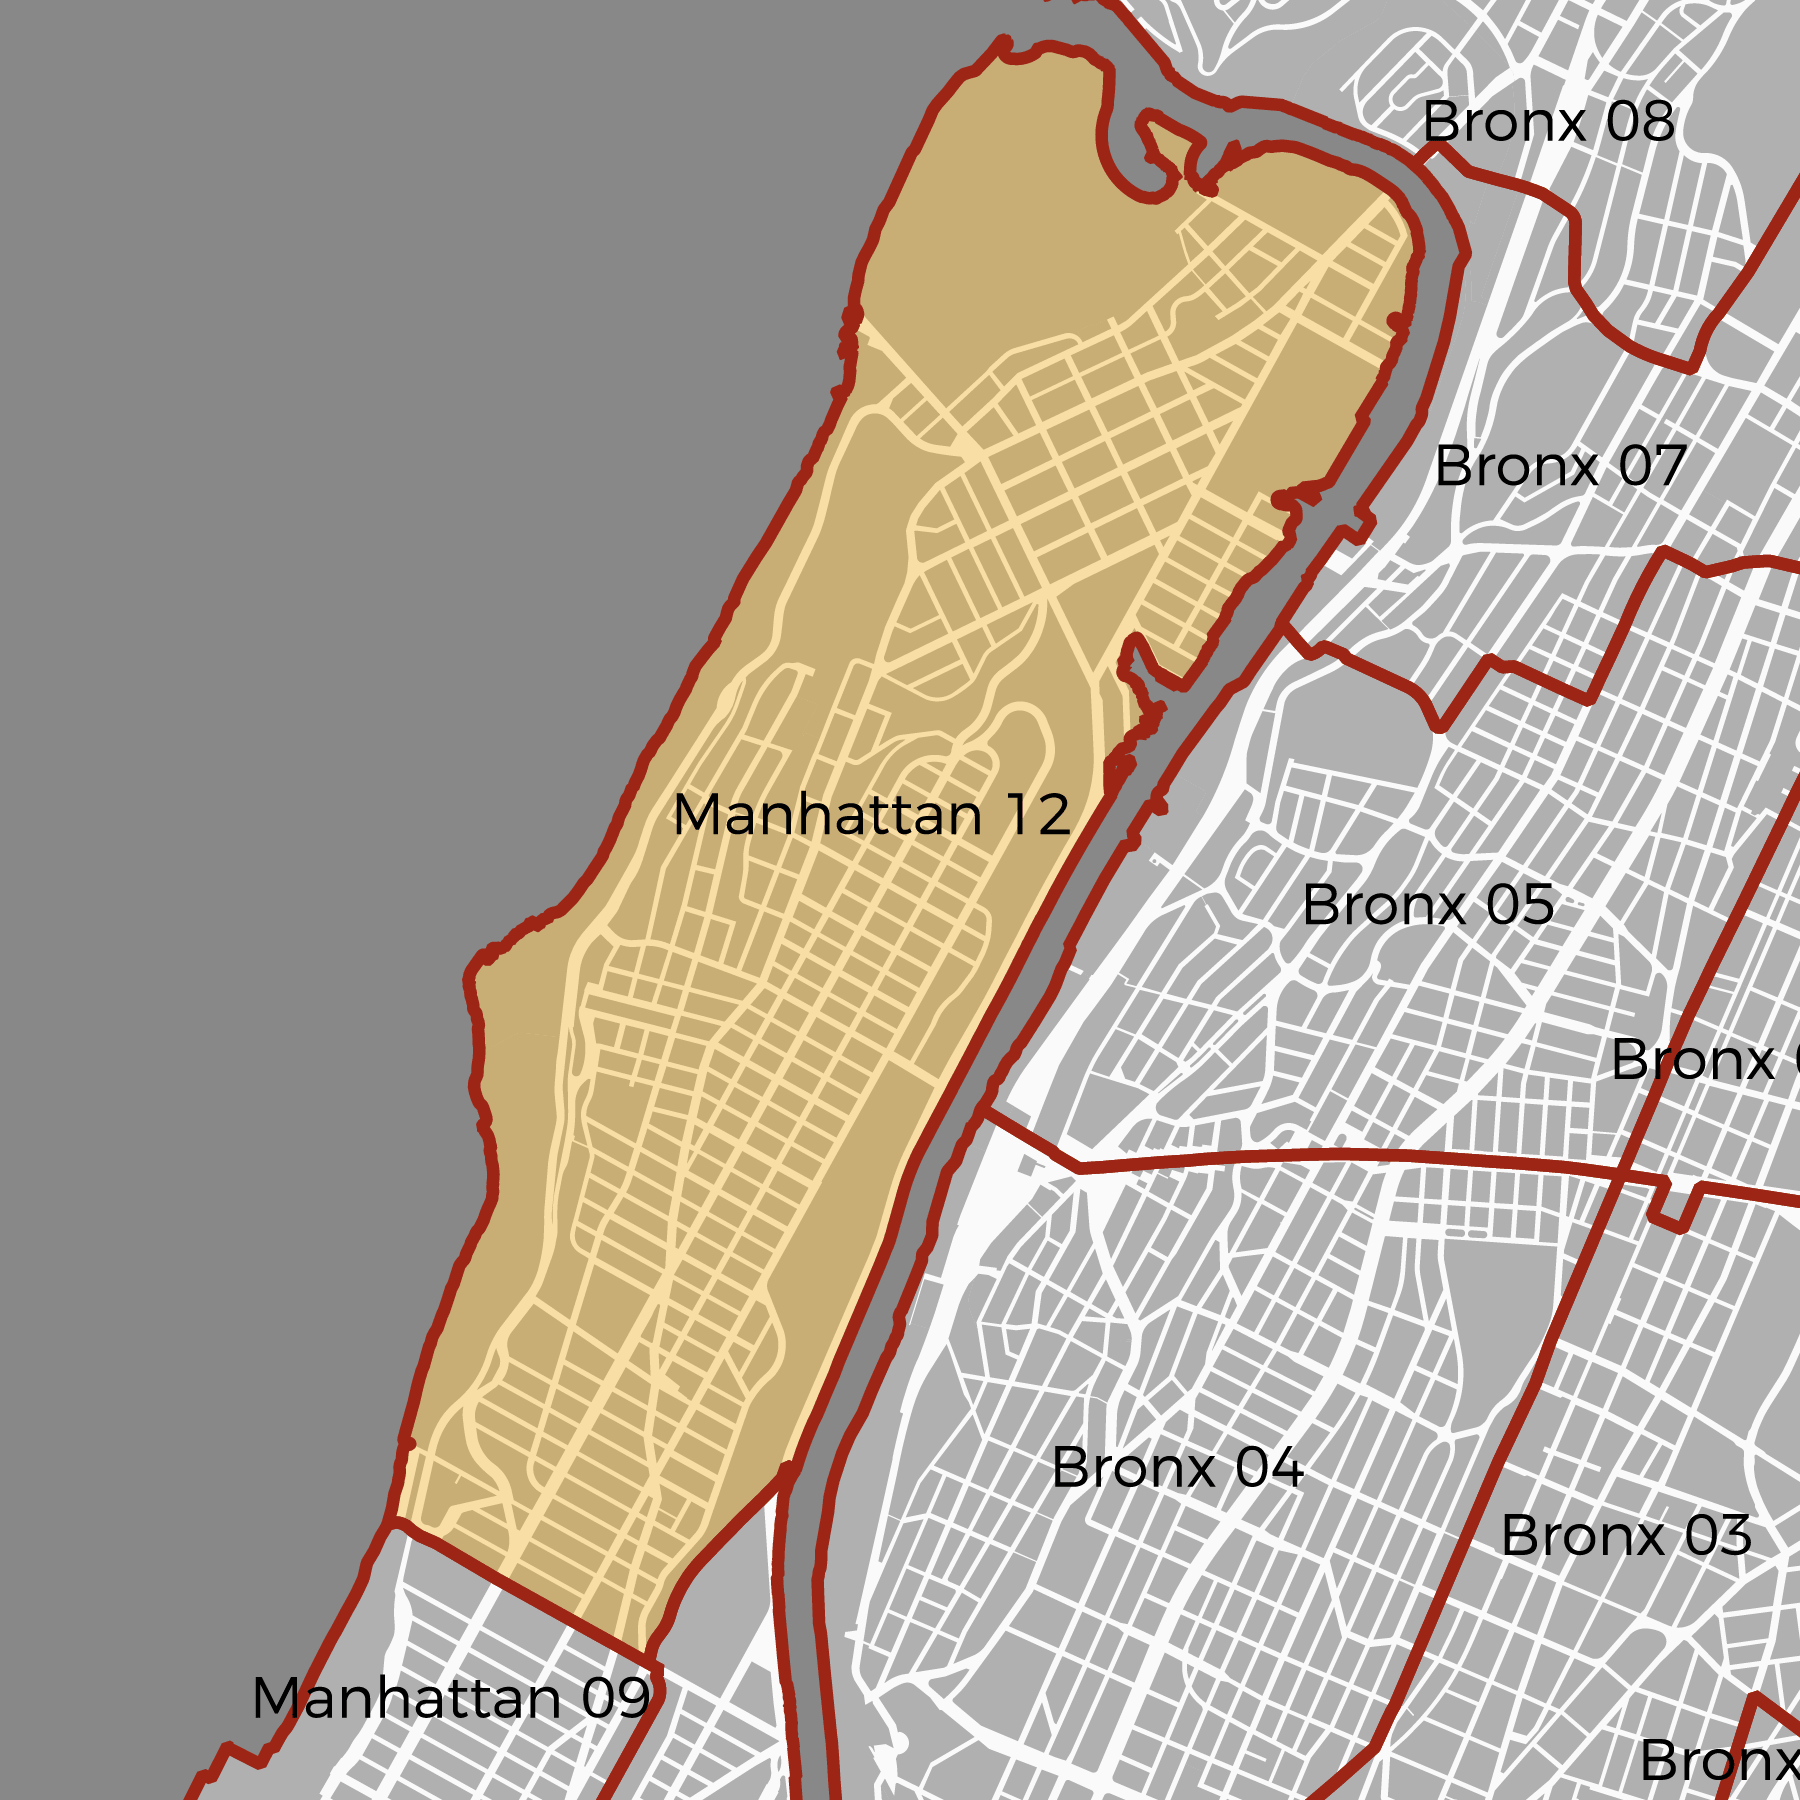 Manhattan Community Board 12